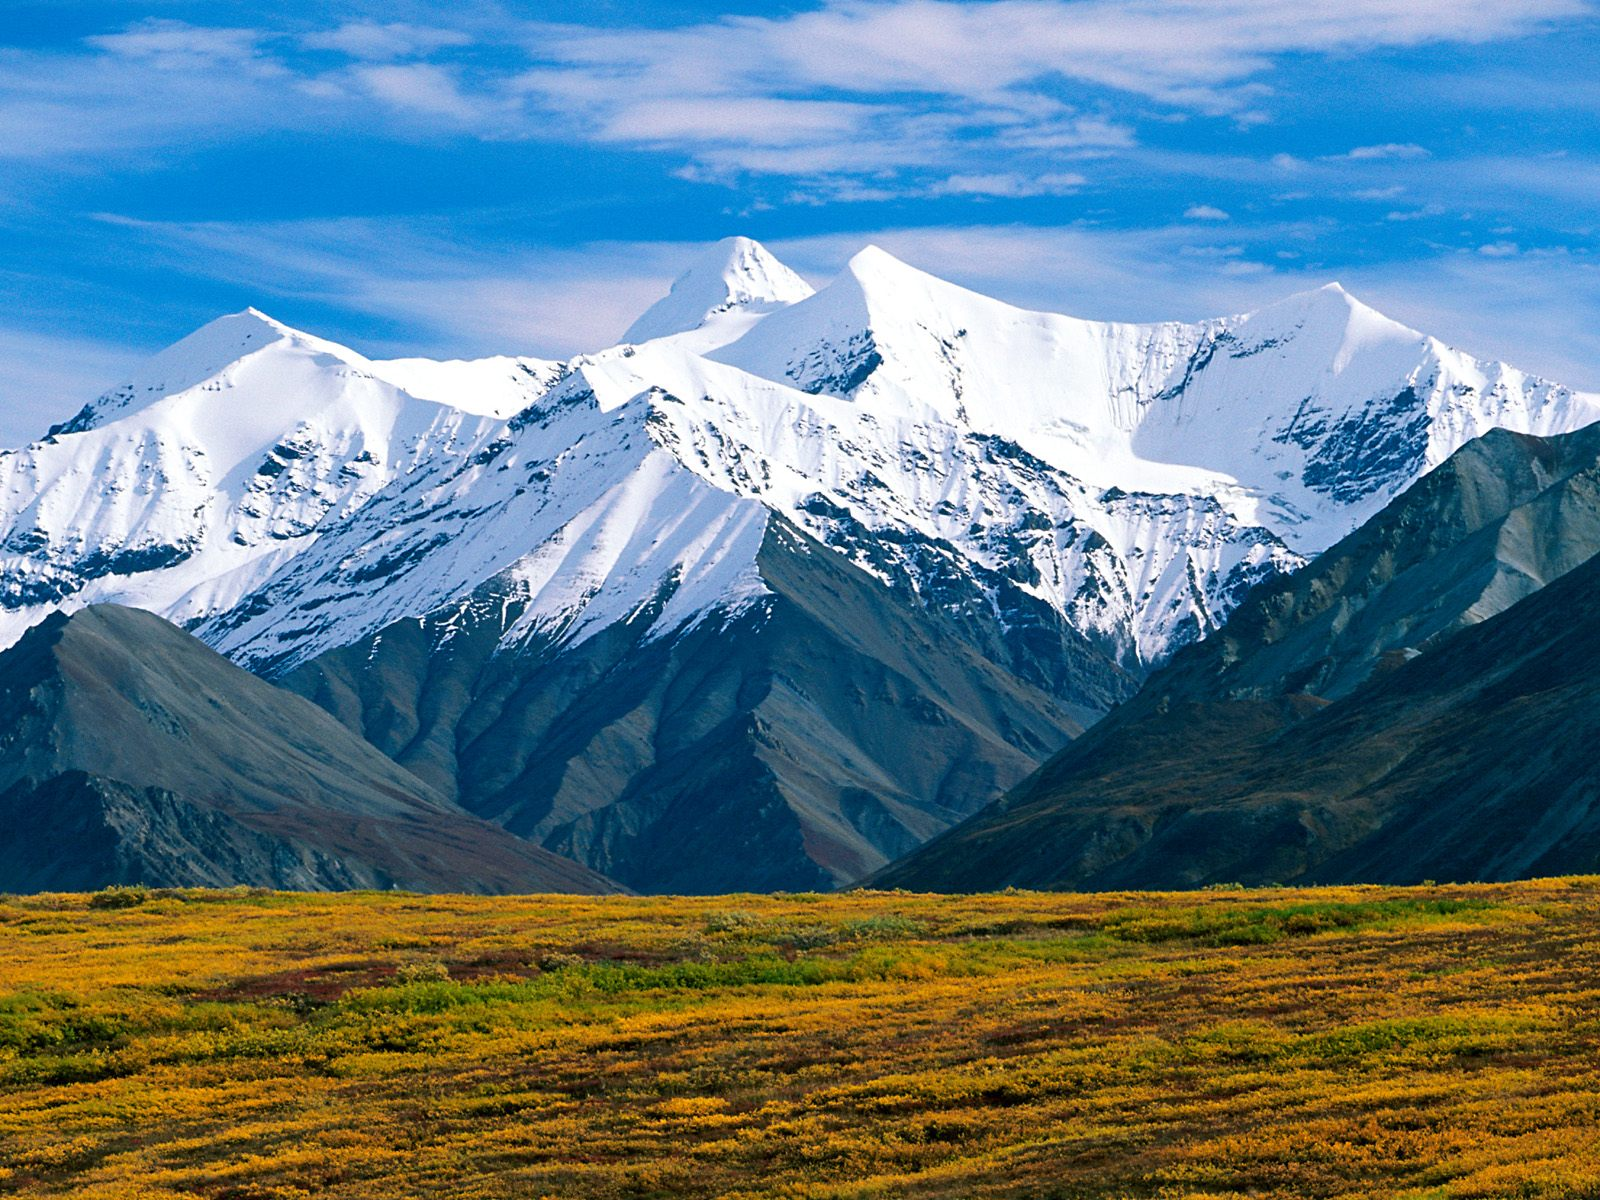 Excellent Nature Denali National Park Alaska Desktop Image Hd Wallpaper Background 1600x1200px